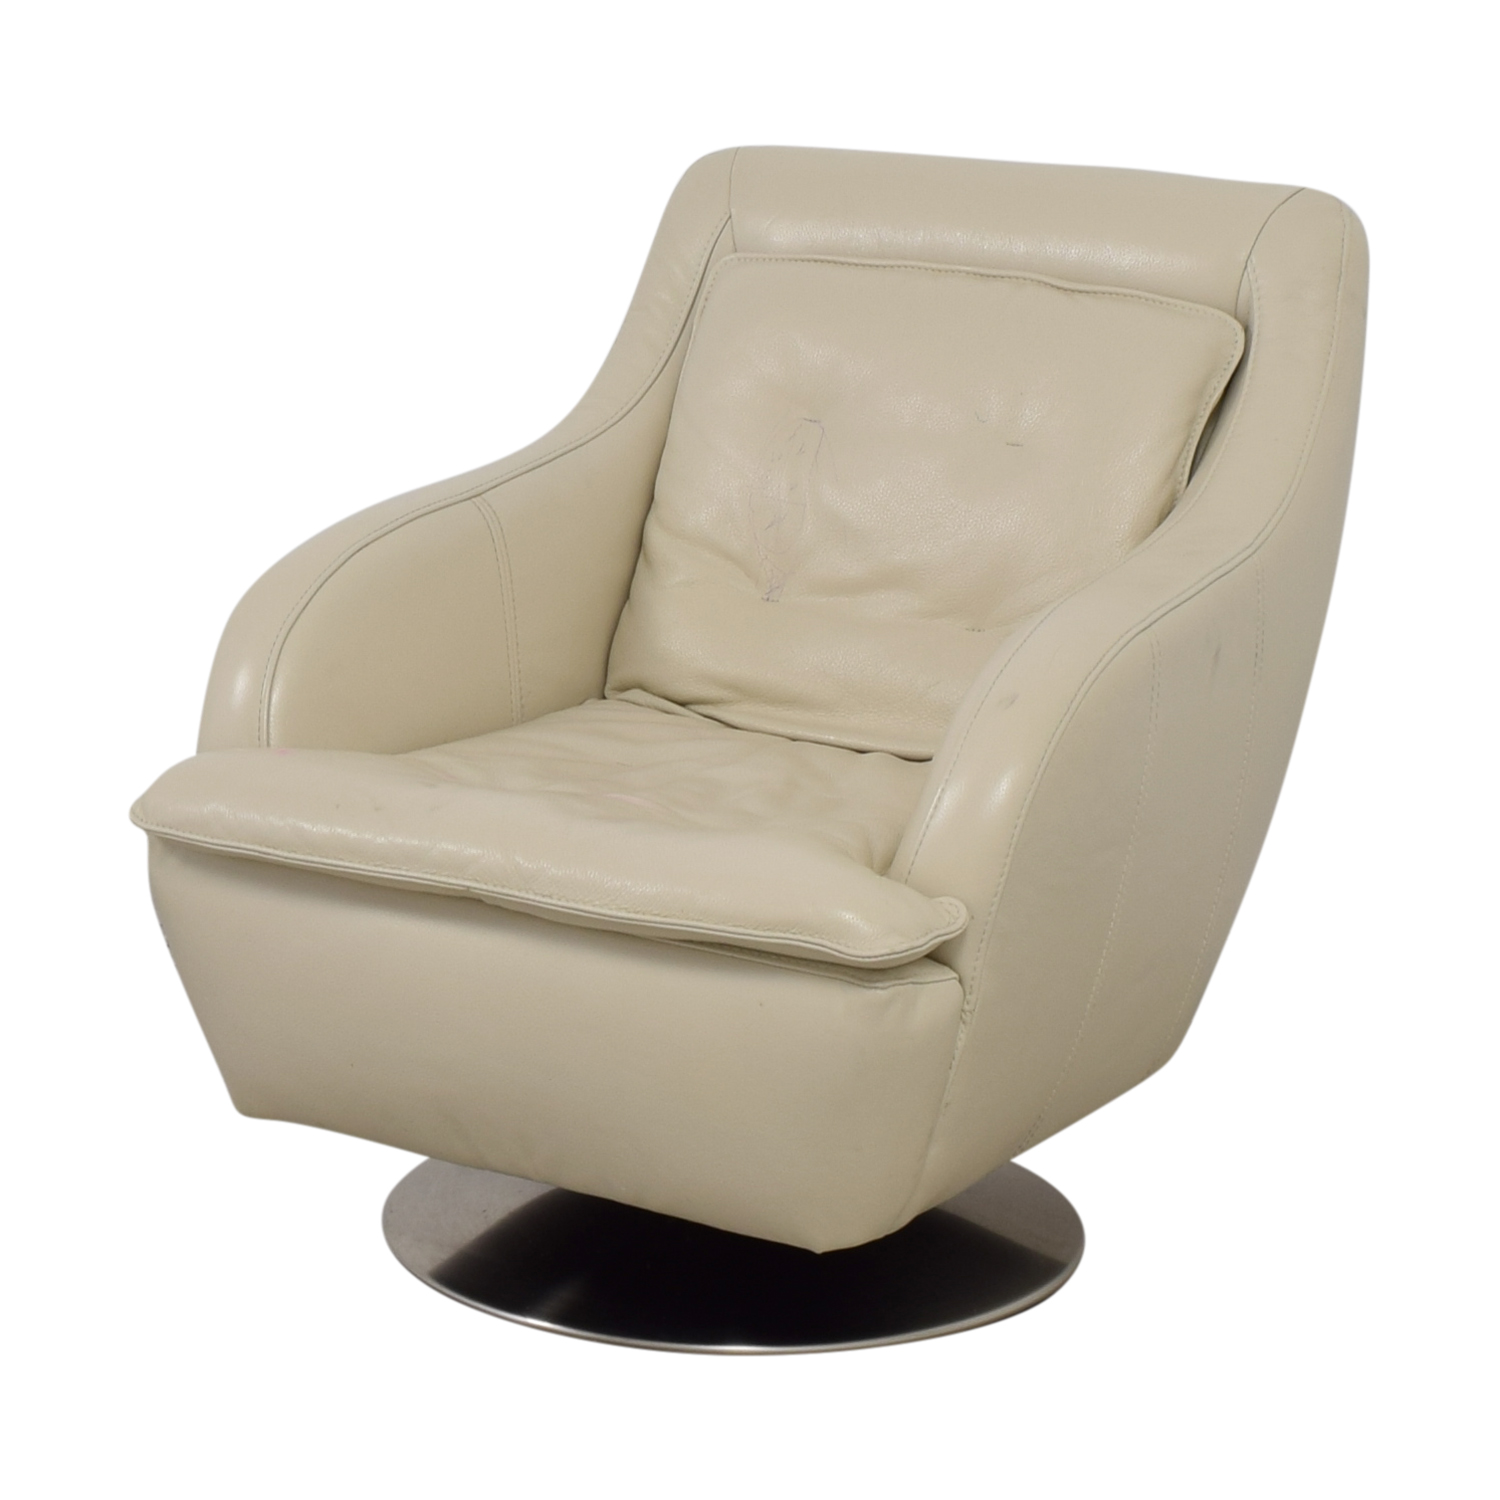 Raymour & Flanigan Raymour & Flanigan White Leather Accent Chair on sale